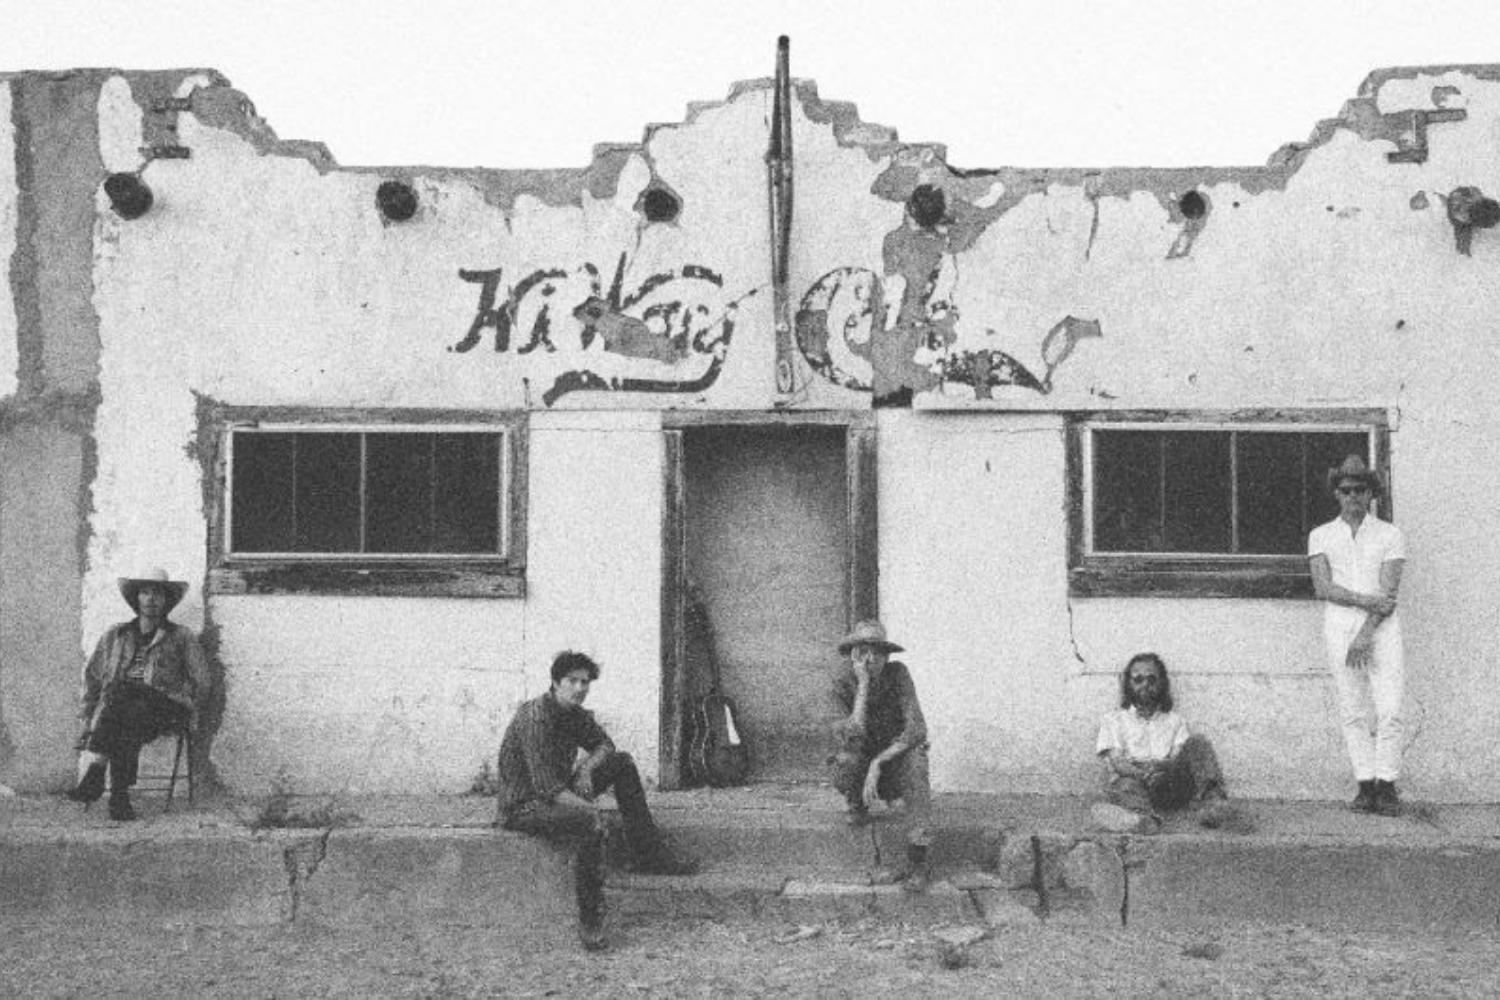 Listen to Deerhunter's new song 'Plains'